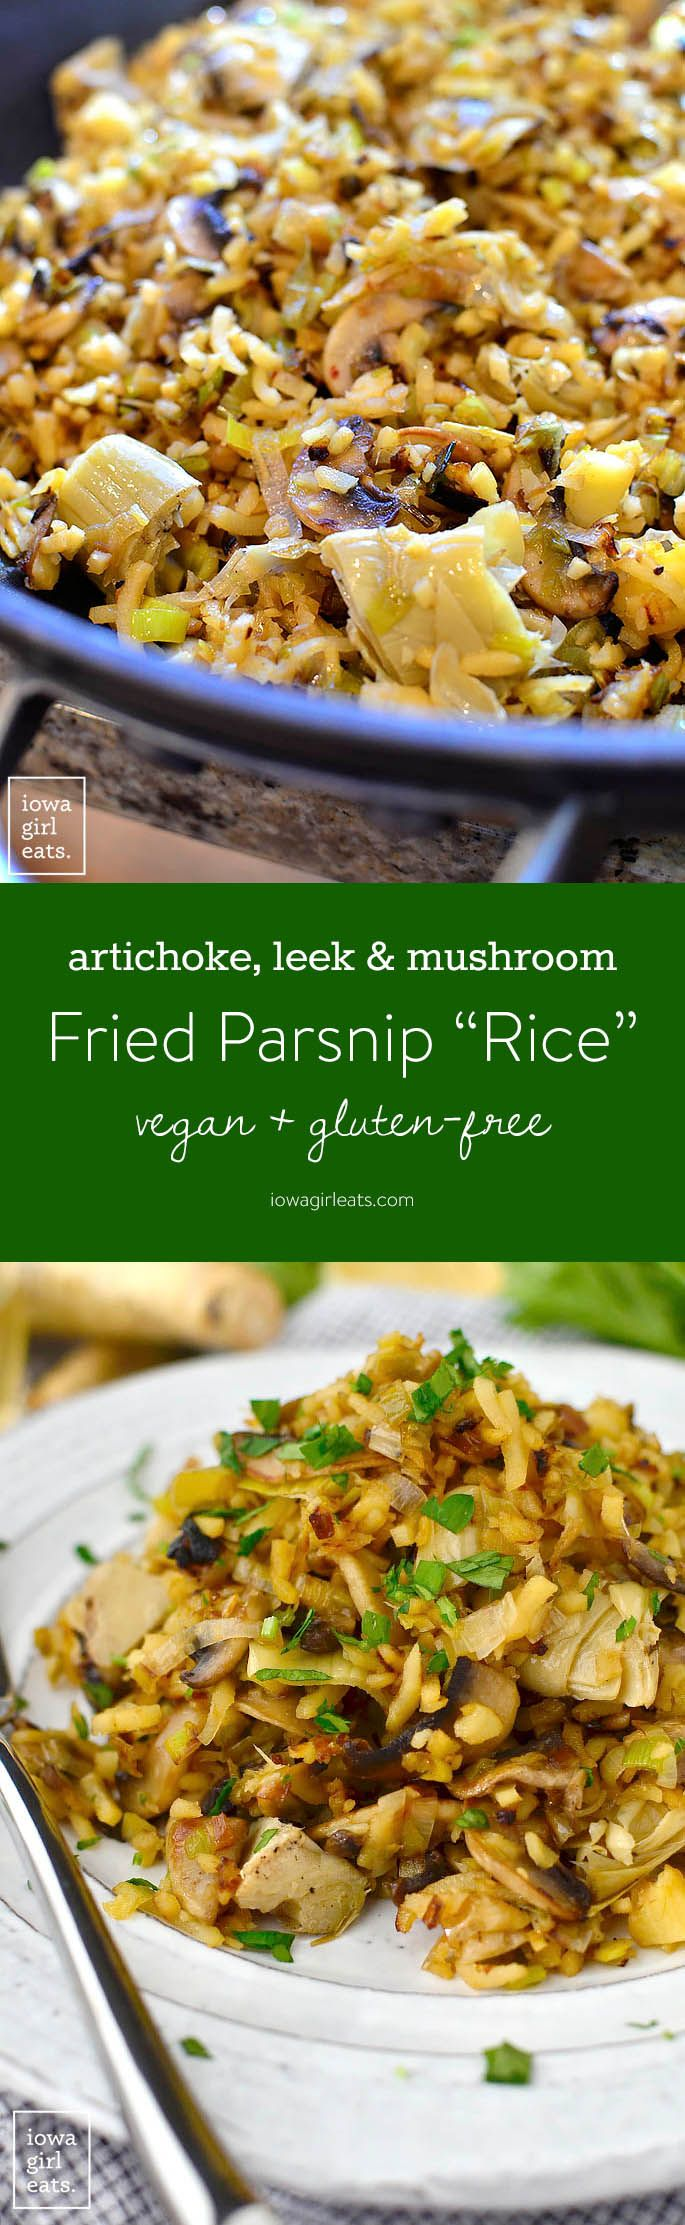 "Artichoke, Leek and Mushroom Fried Parsnip ""Rice"""